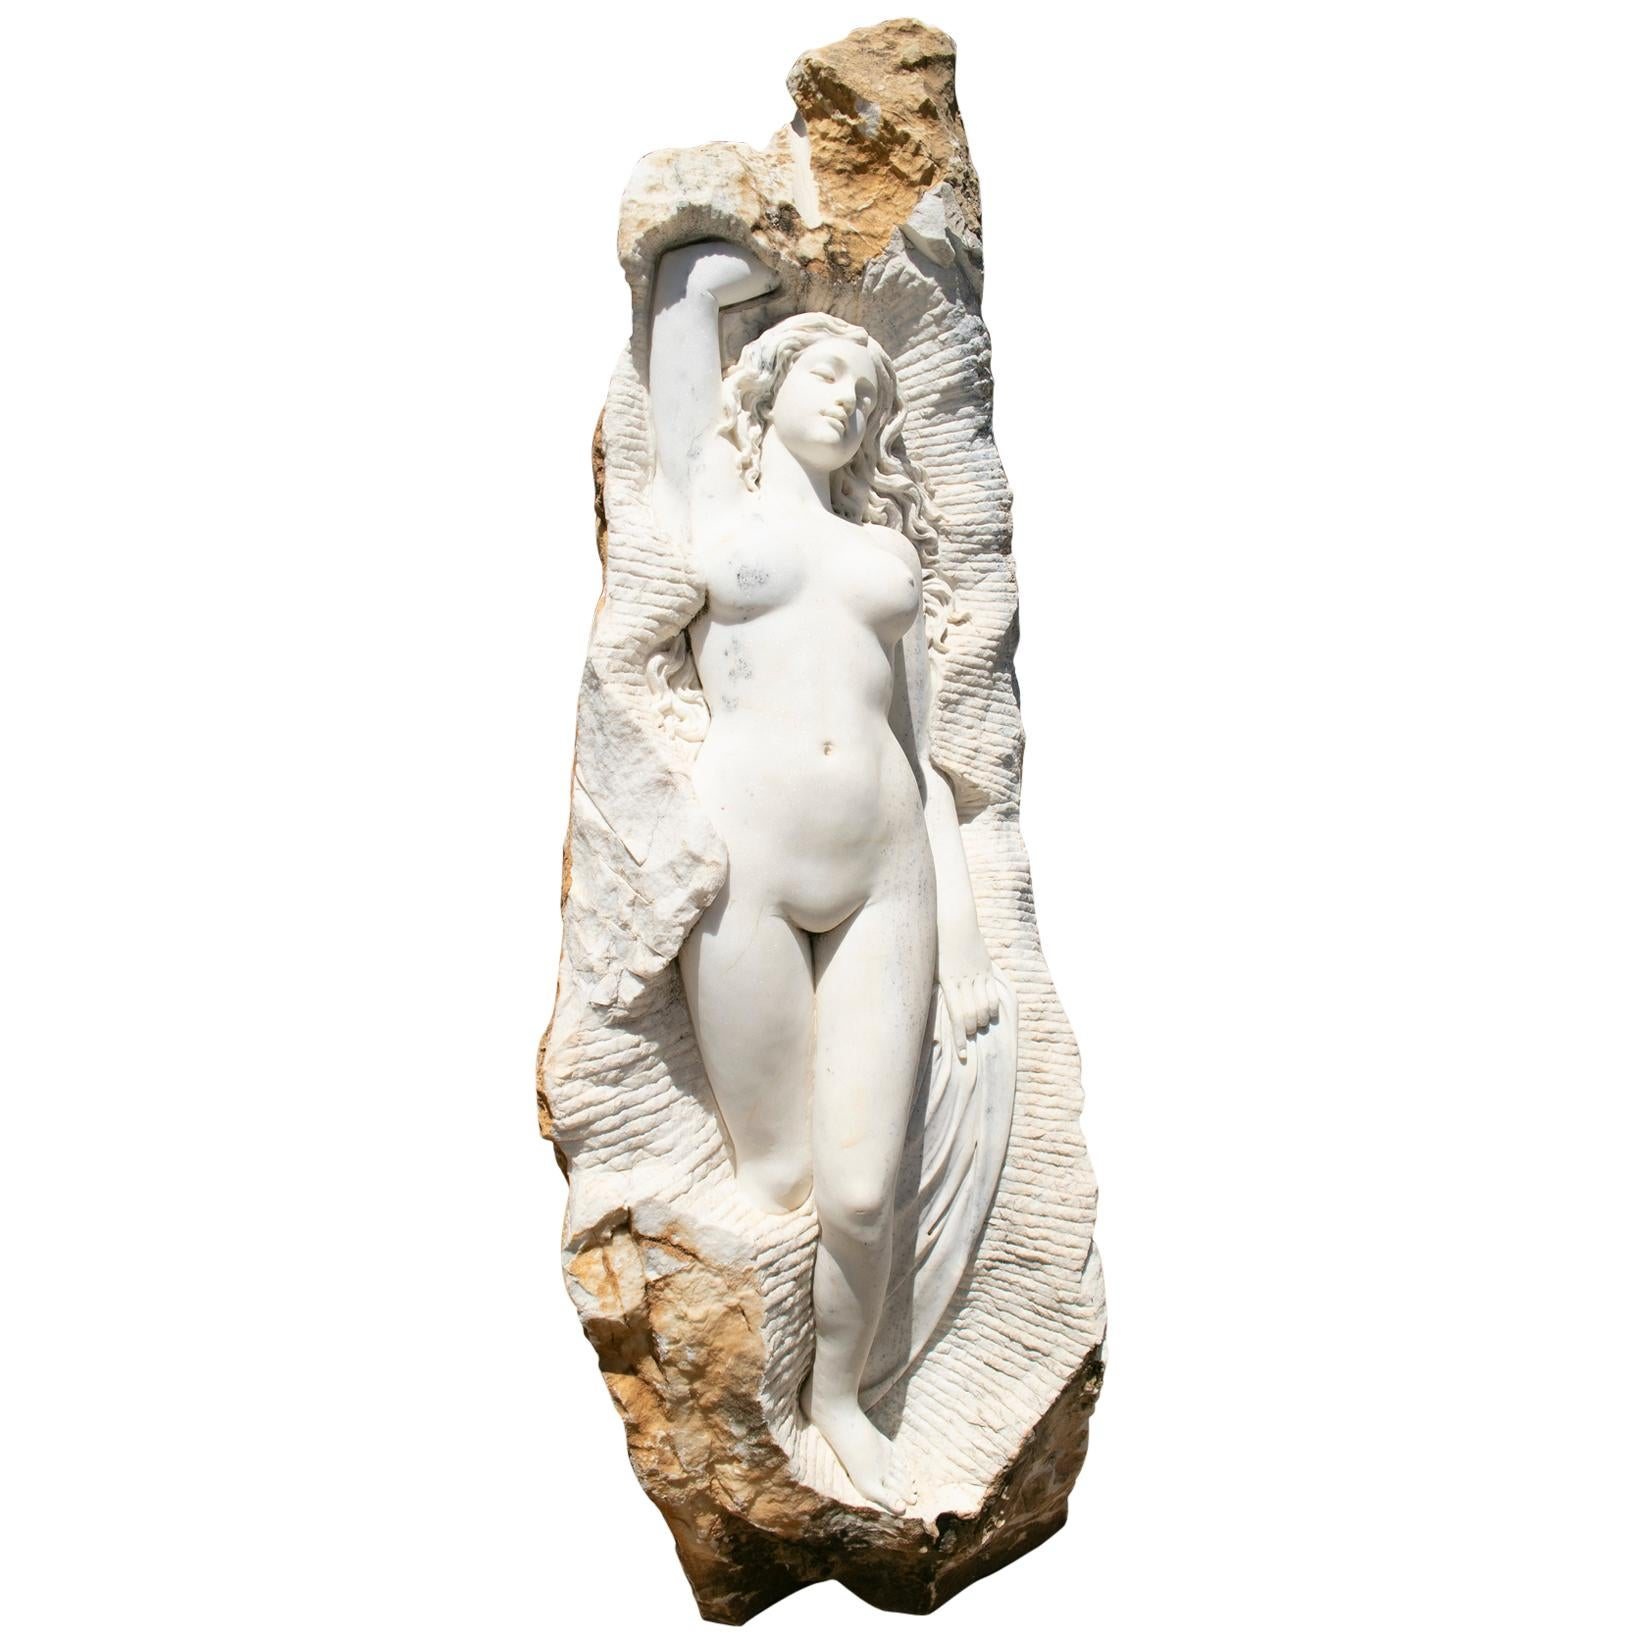 Hand Carved White Marble Female Sculpture on a Single Block